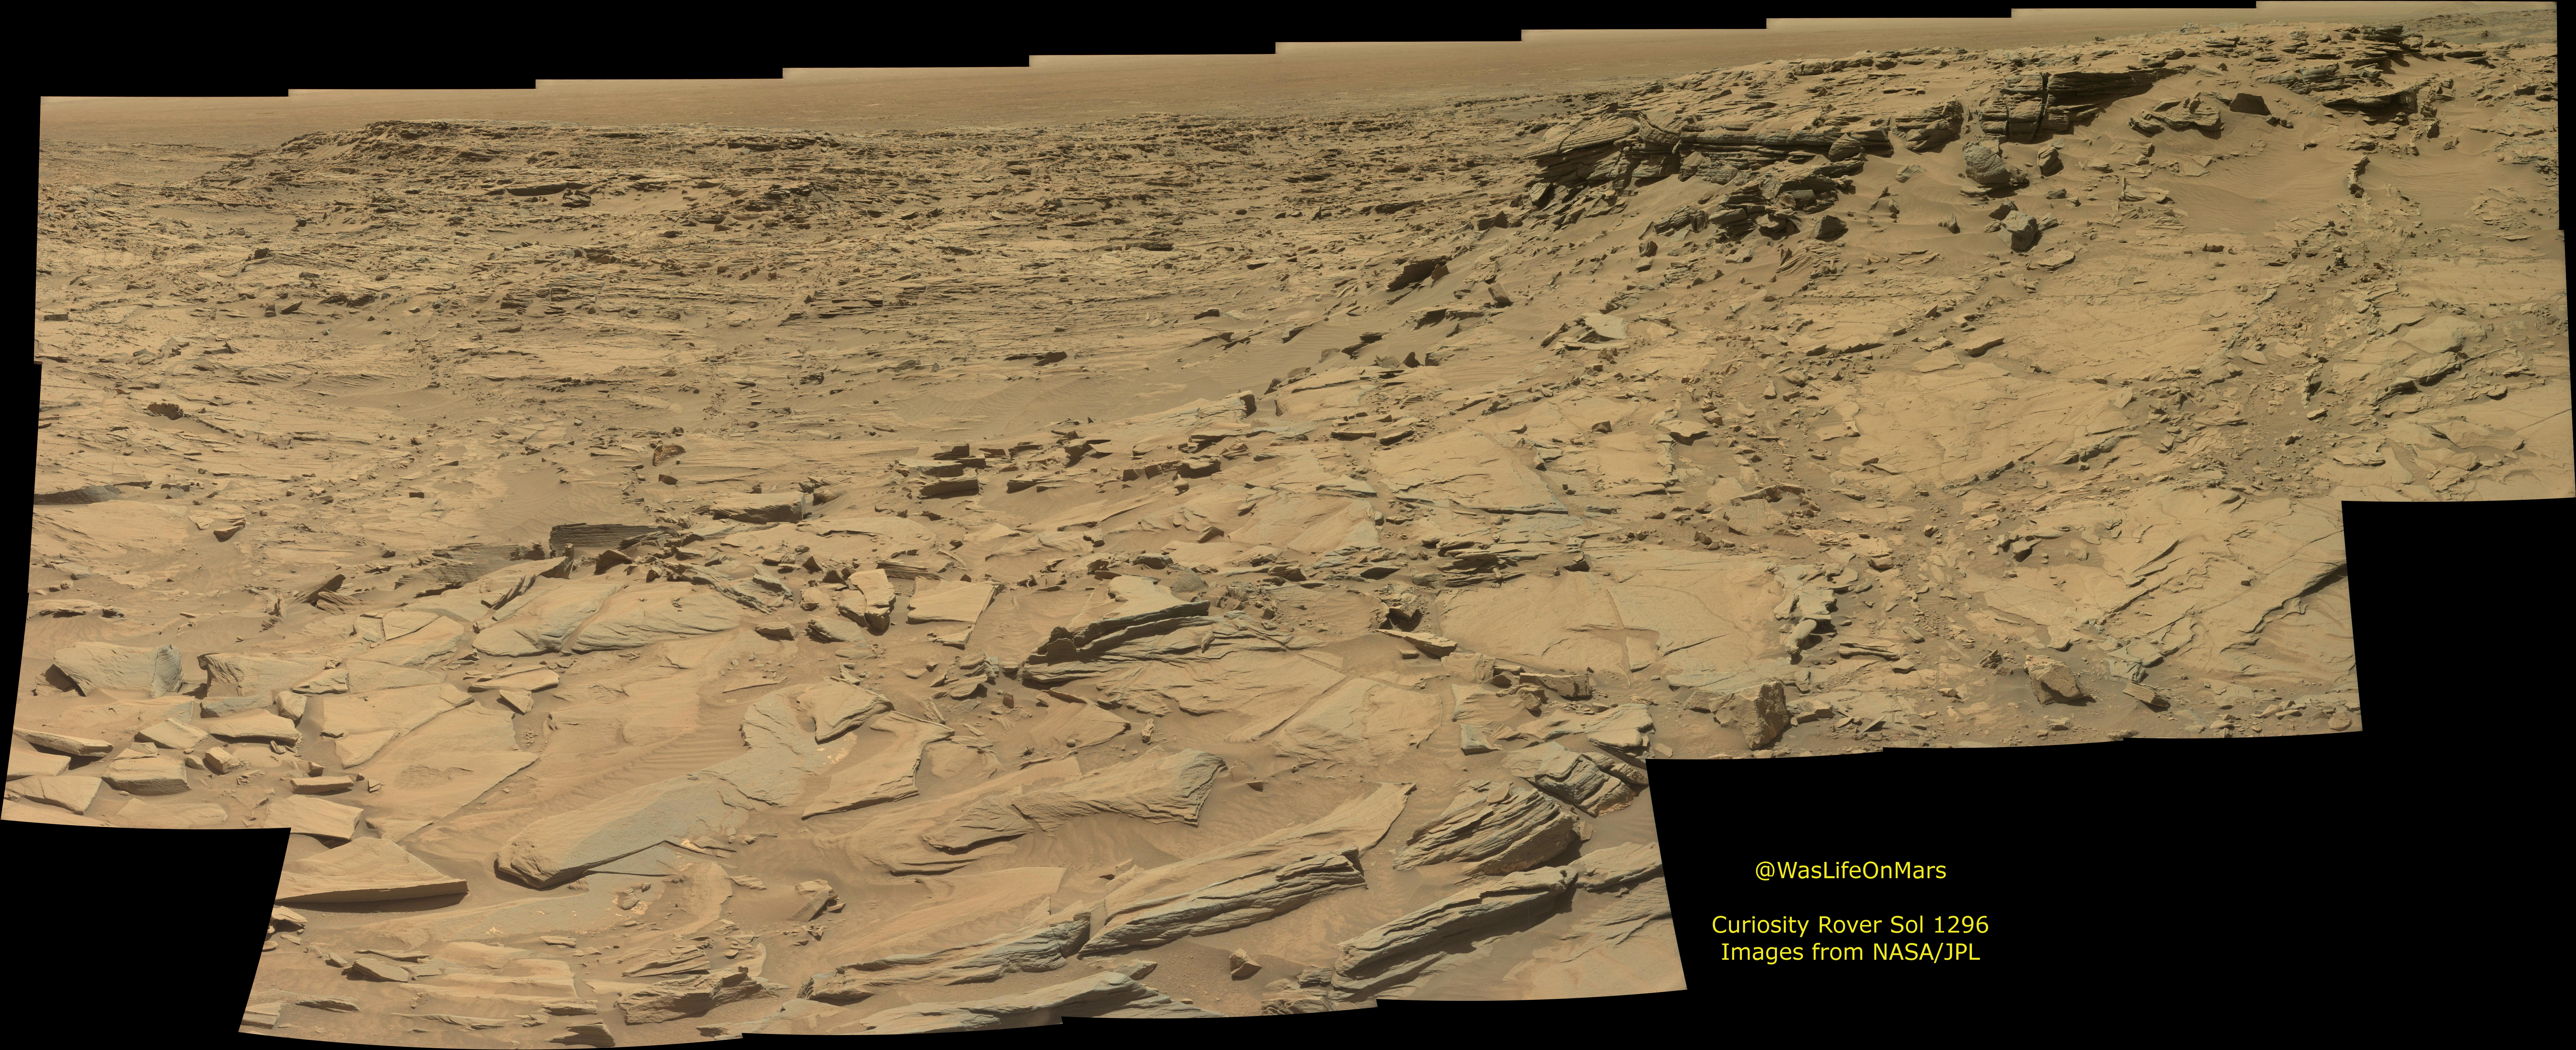 http://waslifeonmars.com/wp-content/uploads/2016/04/panoramic-curiosity-rover-view-2-sol- 1296-was-life-on-mars.jpg